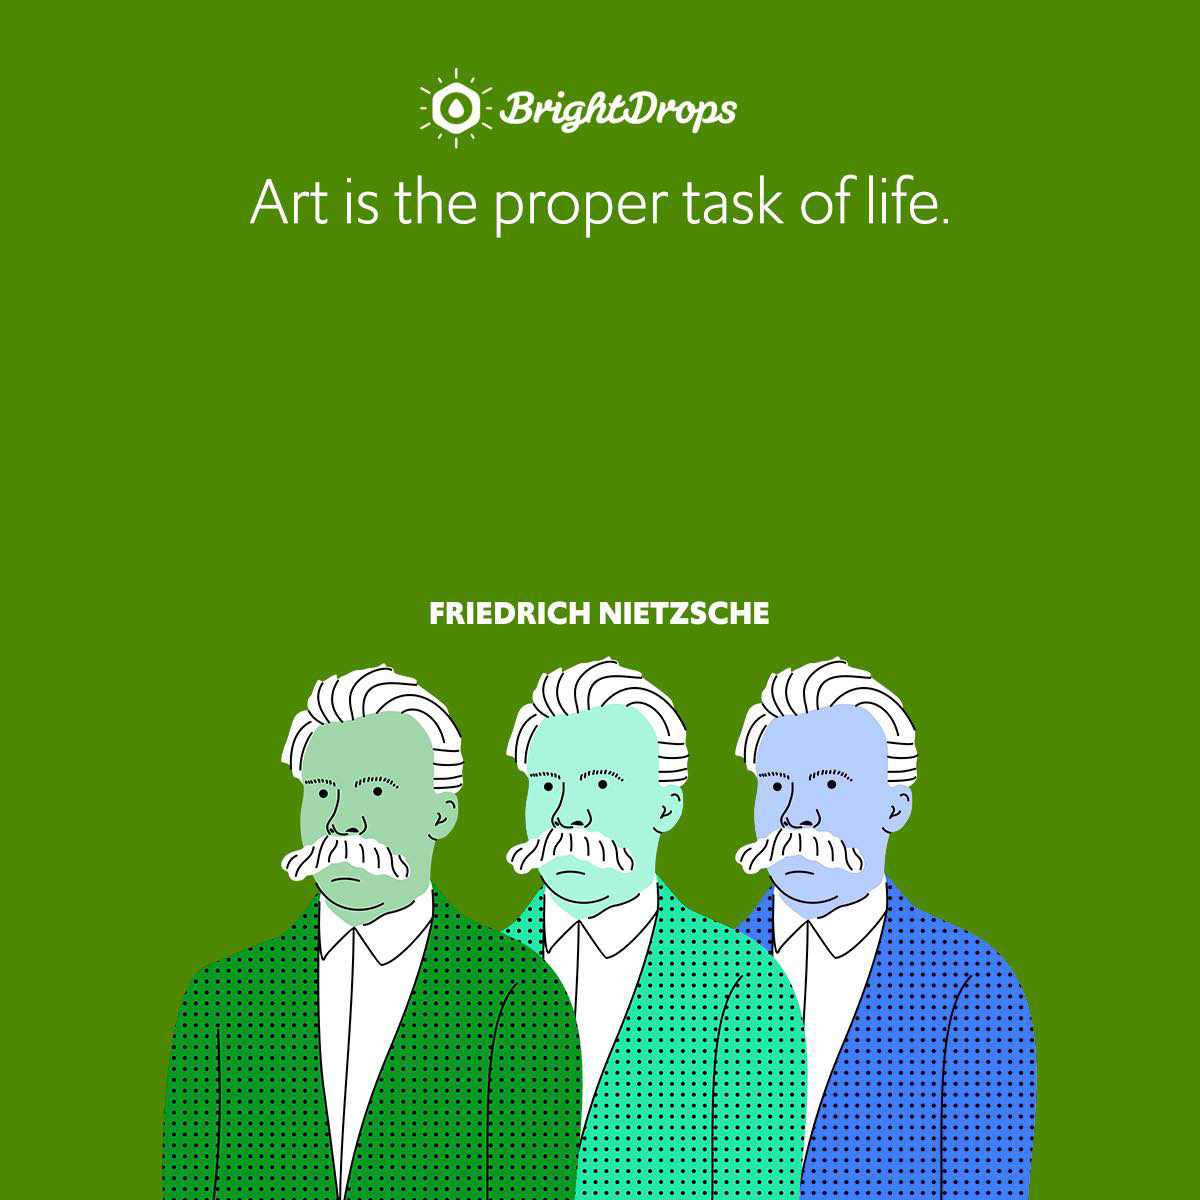 Art is the proper task of life.